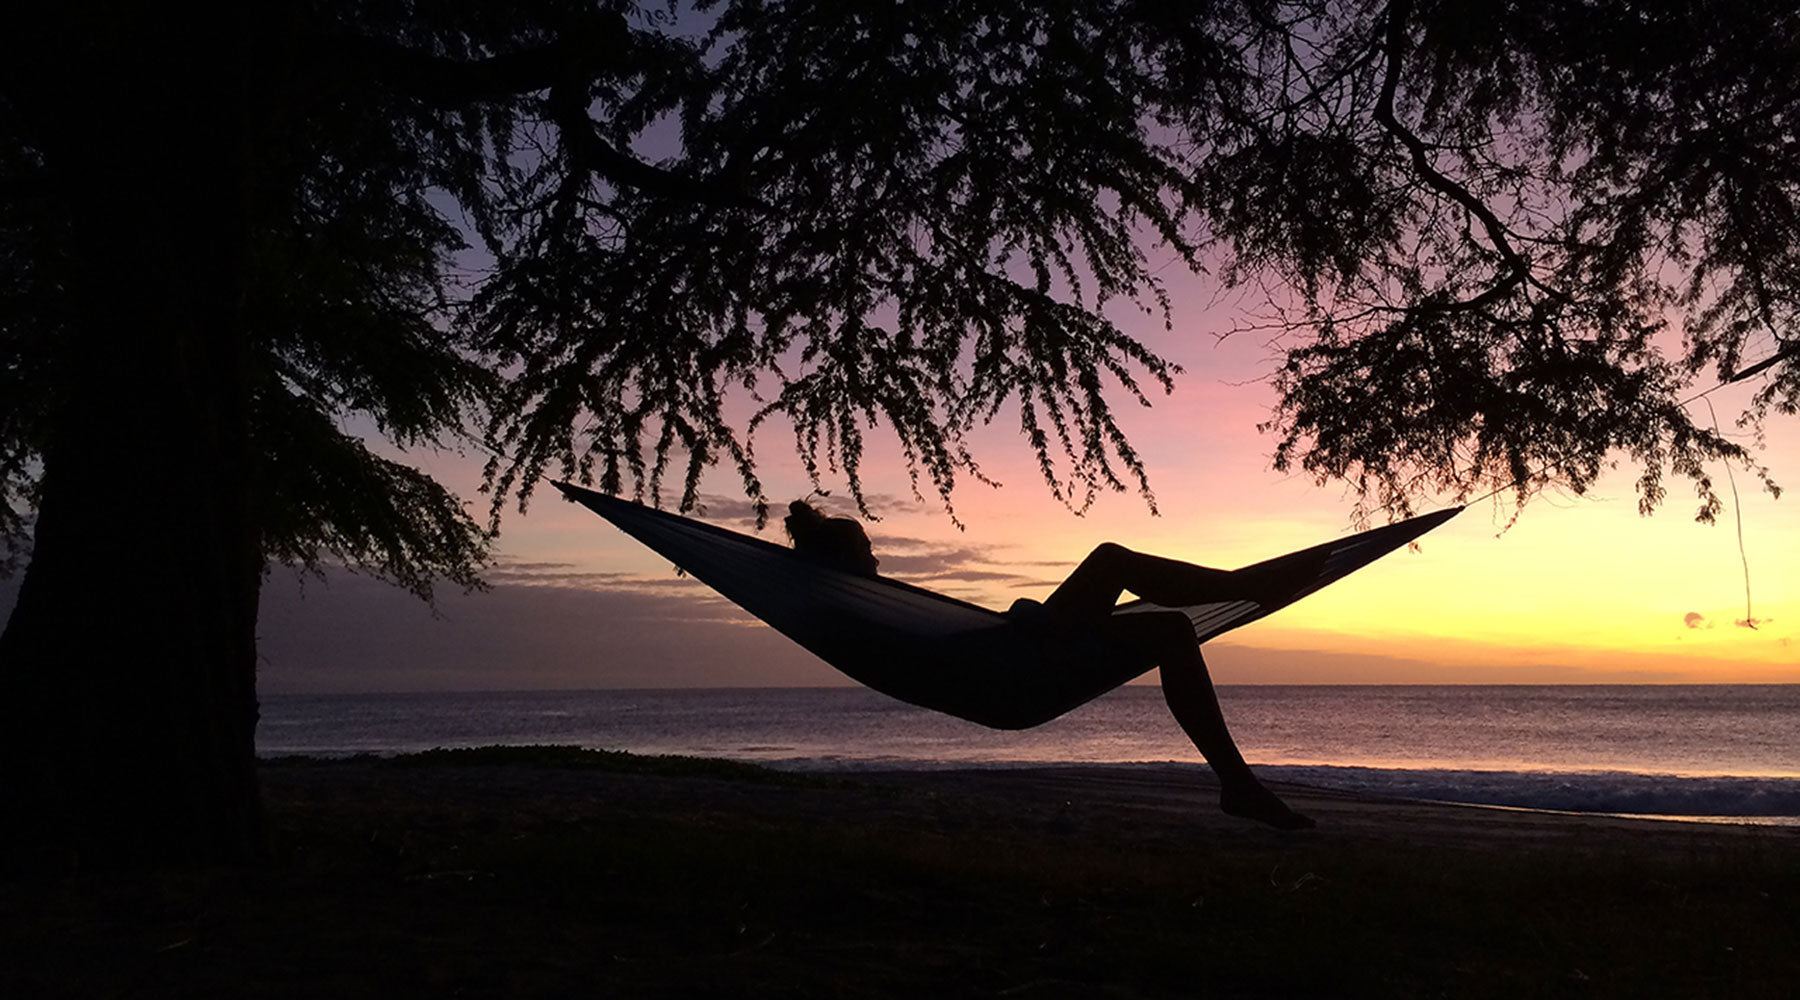 Hammock Sunset On Beach